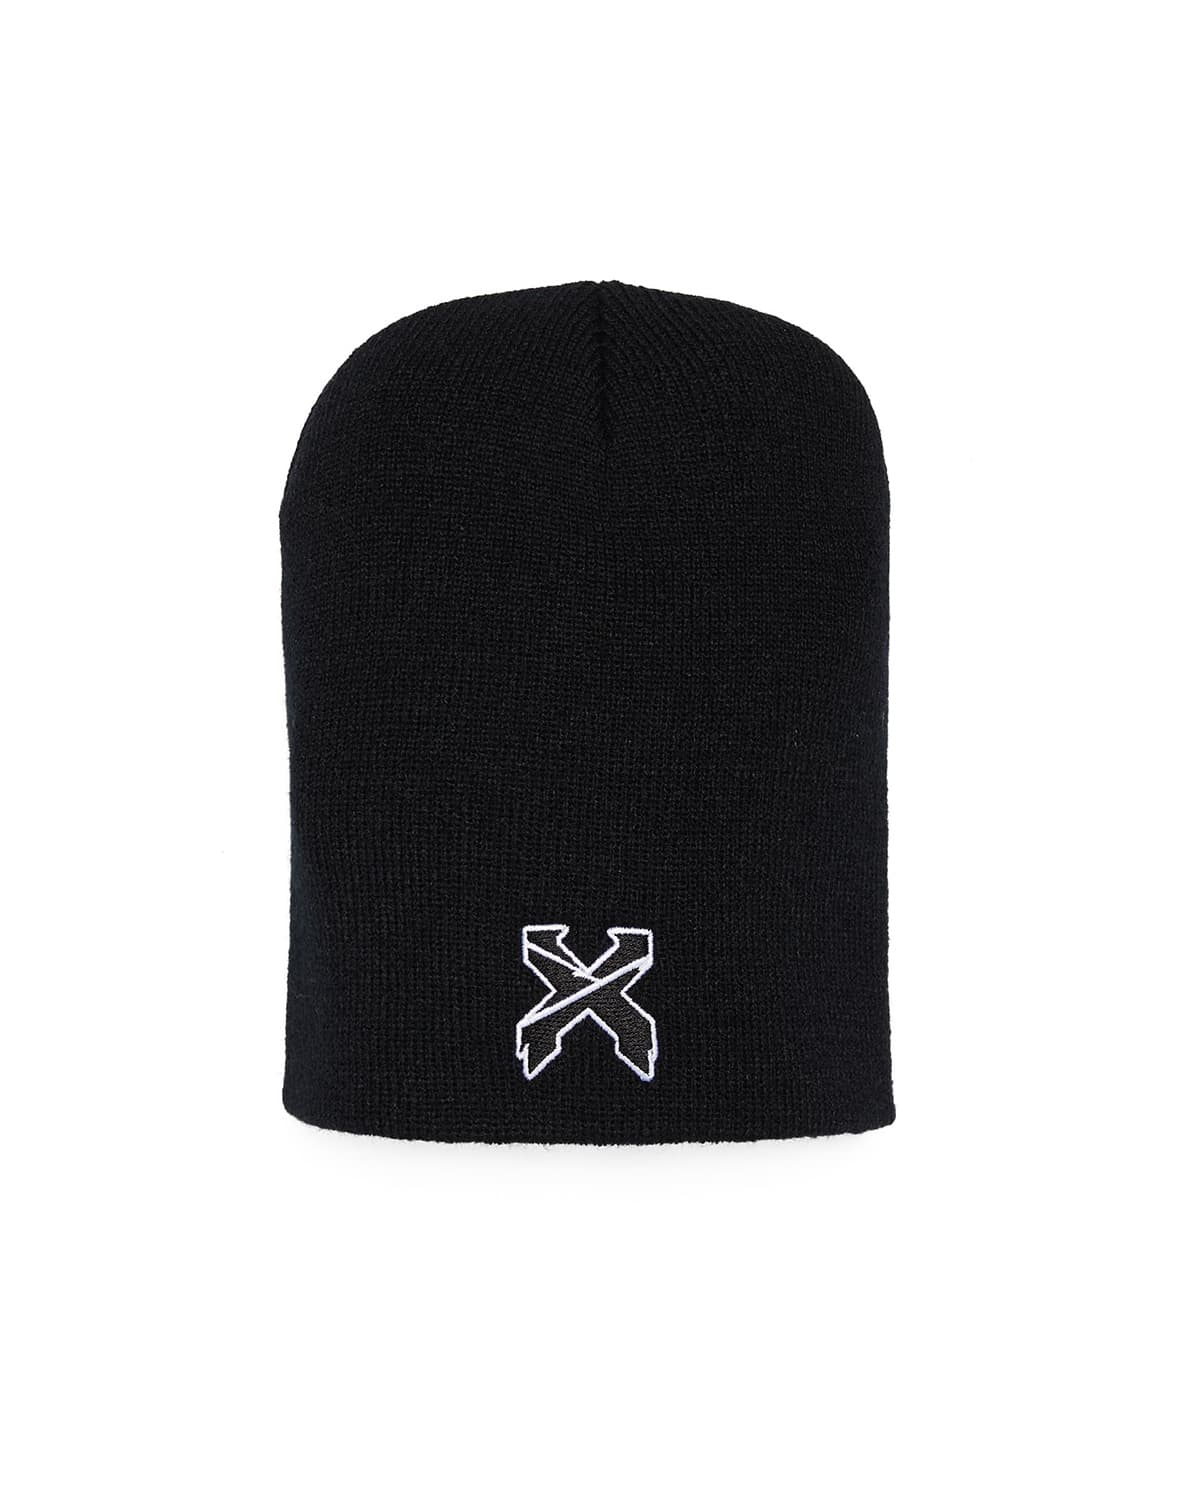 Excision 'Sliced' Logo Beanie